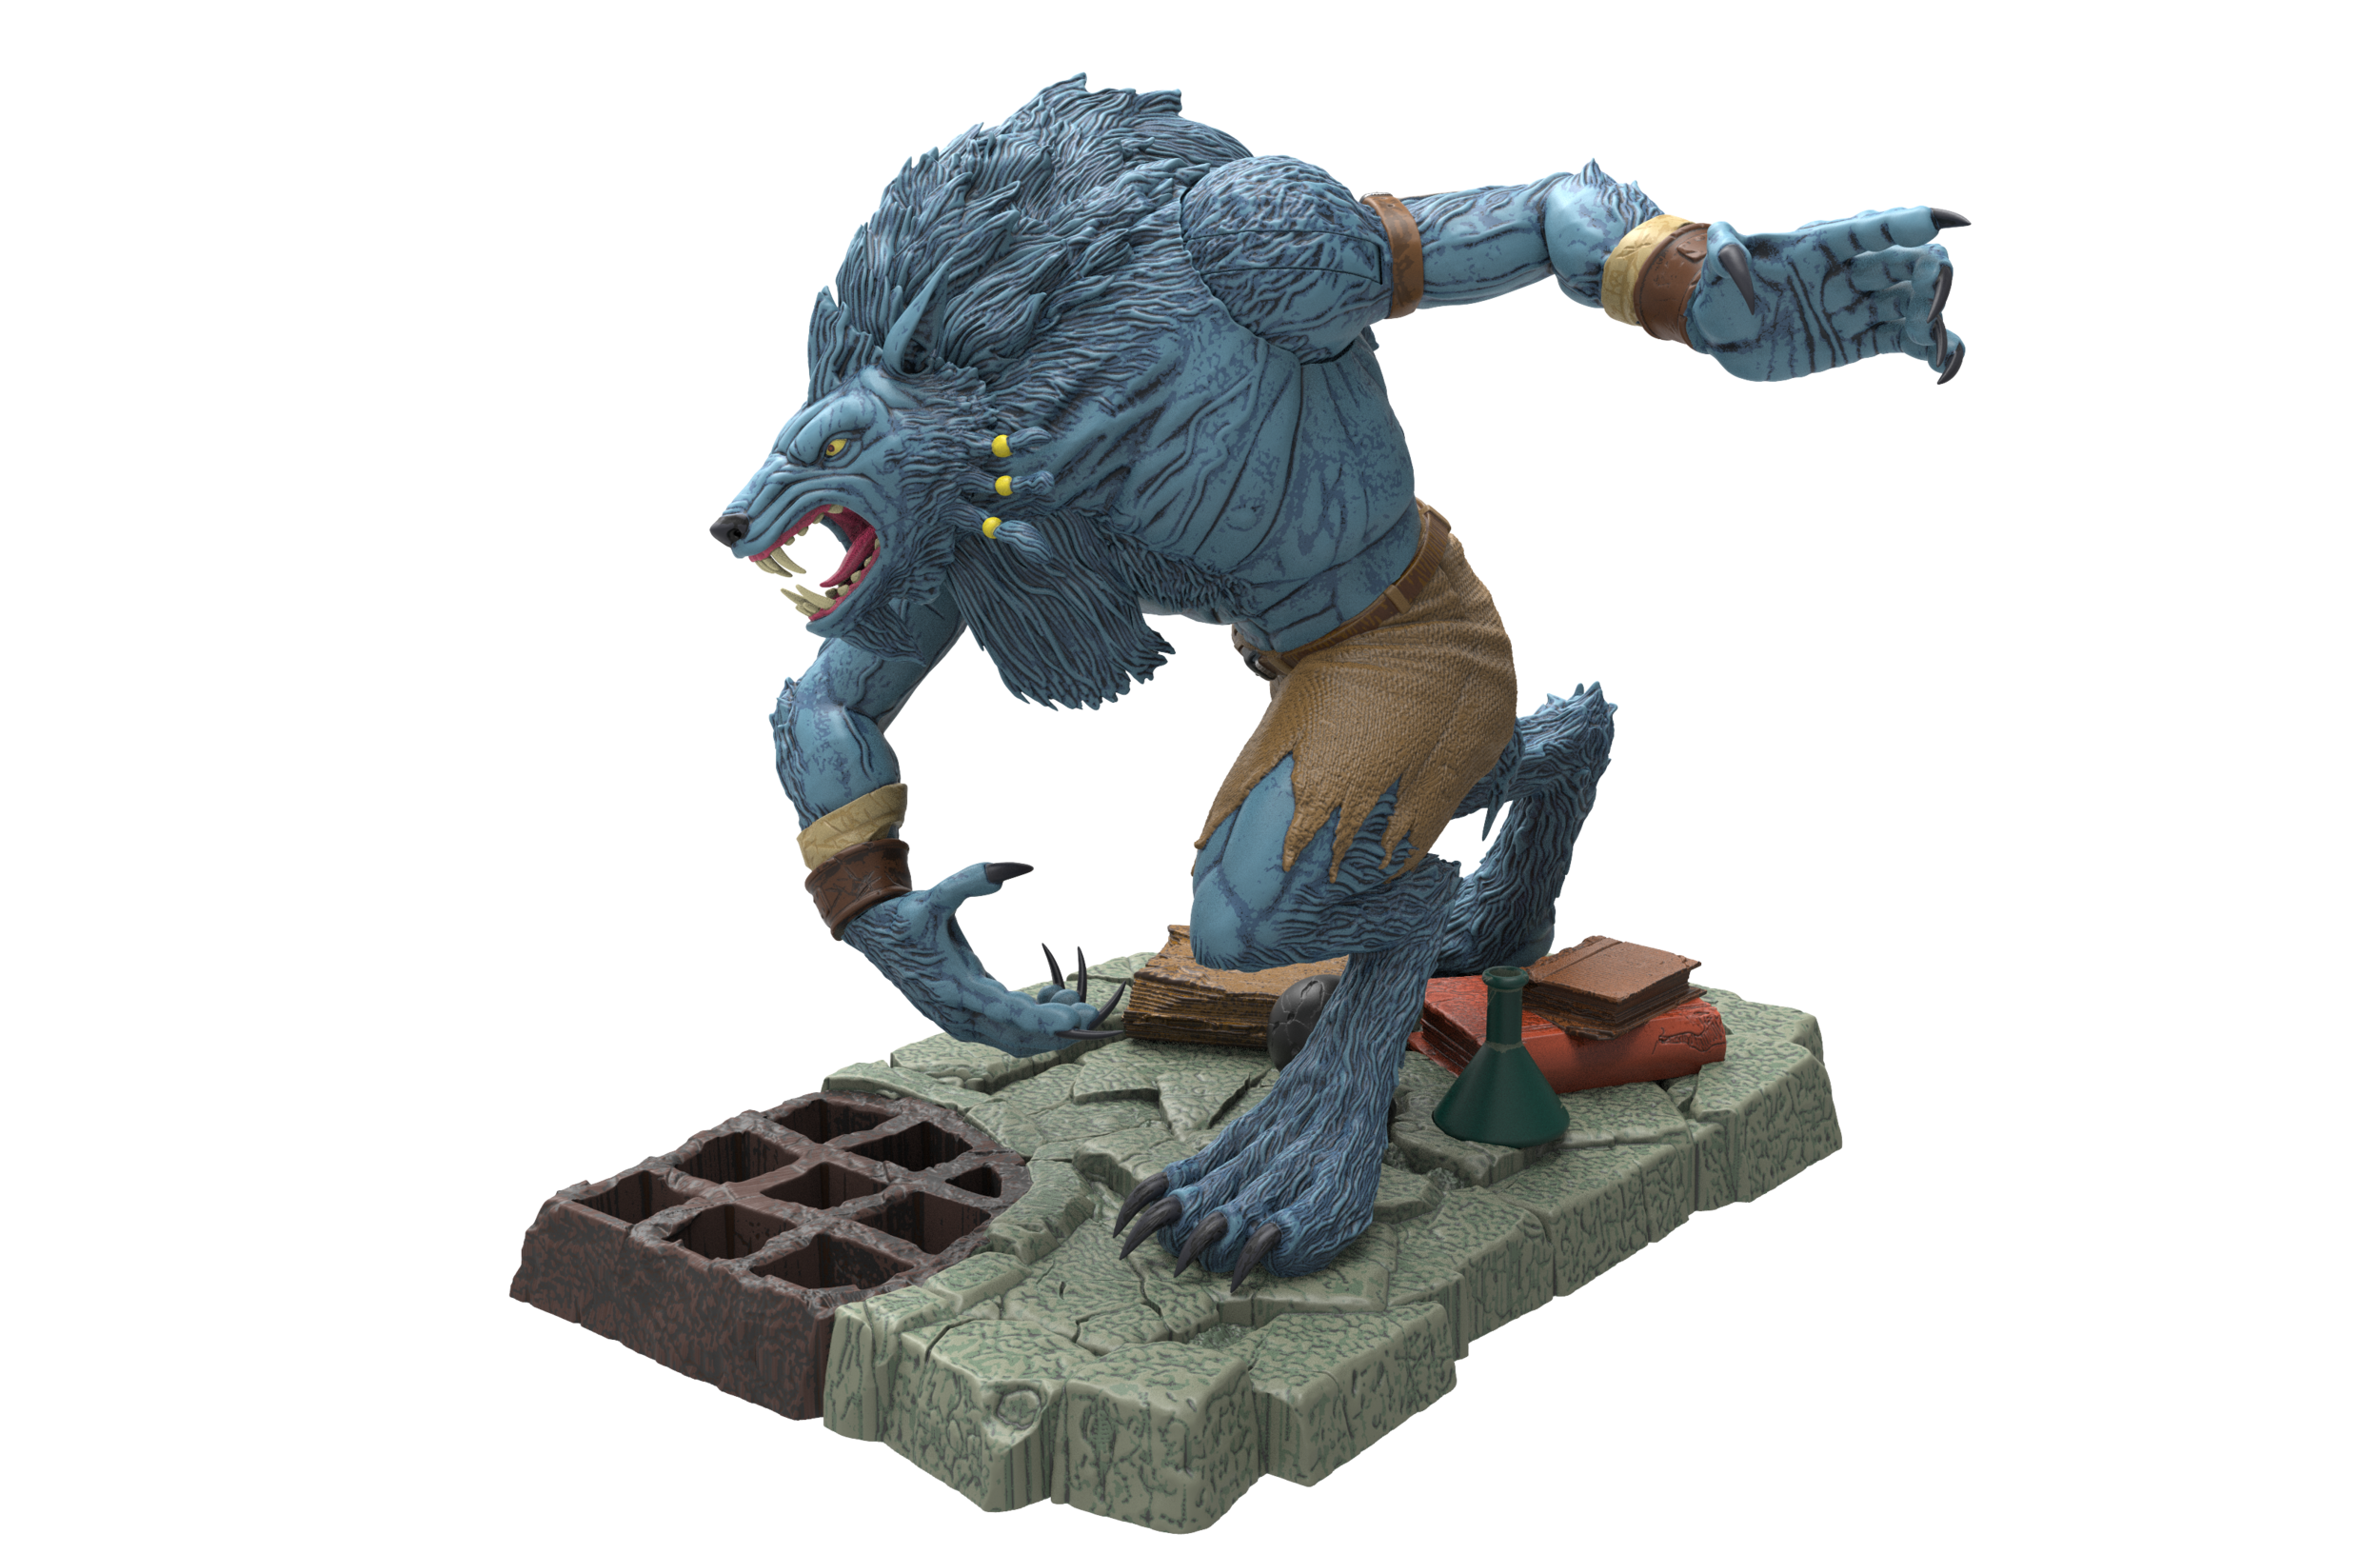 KI Action Figure 2.png